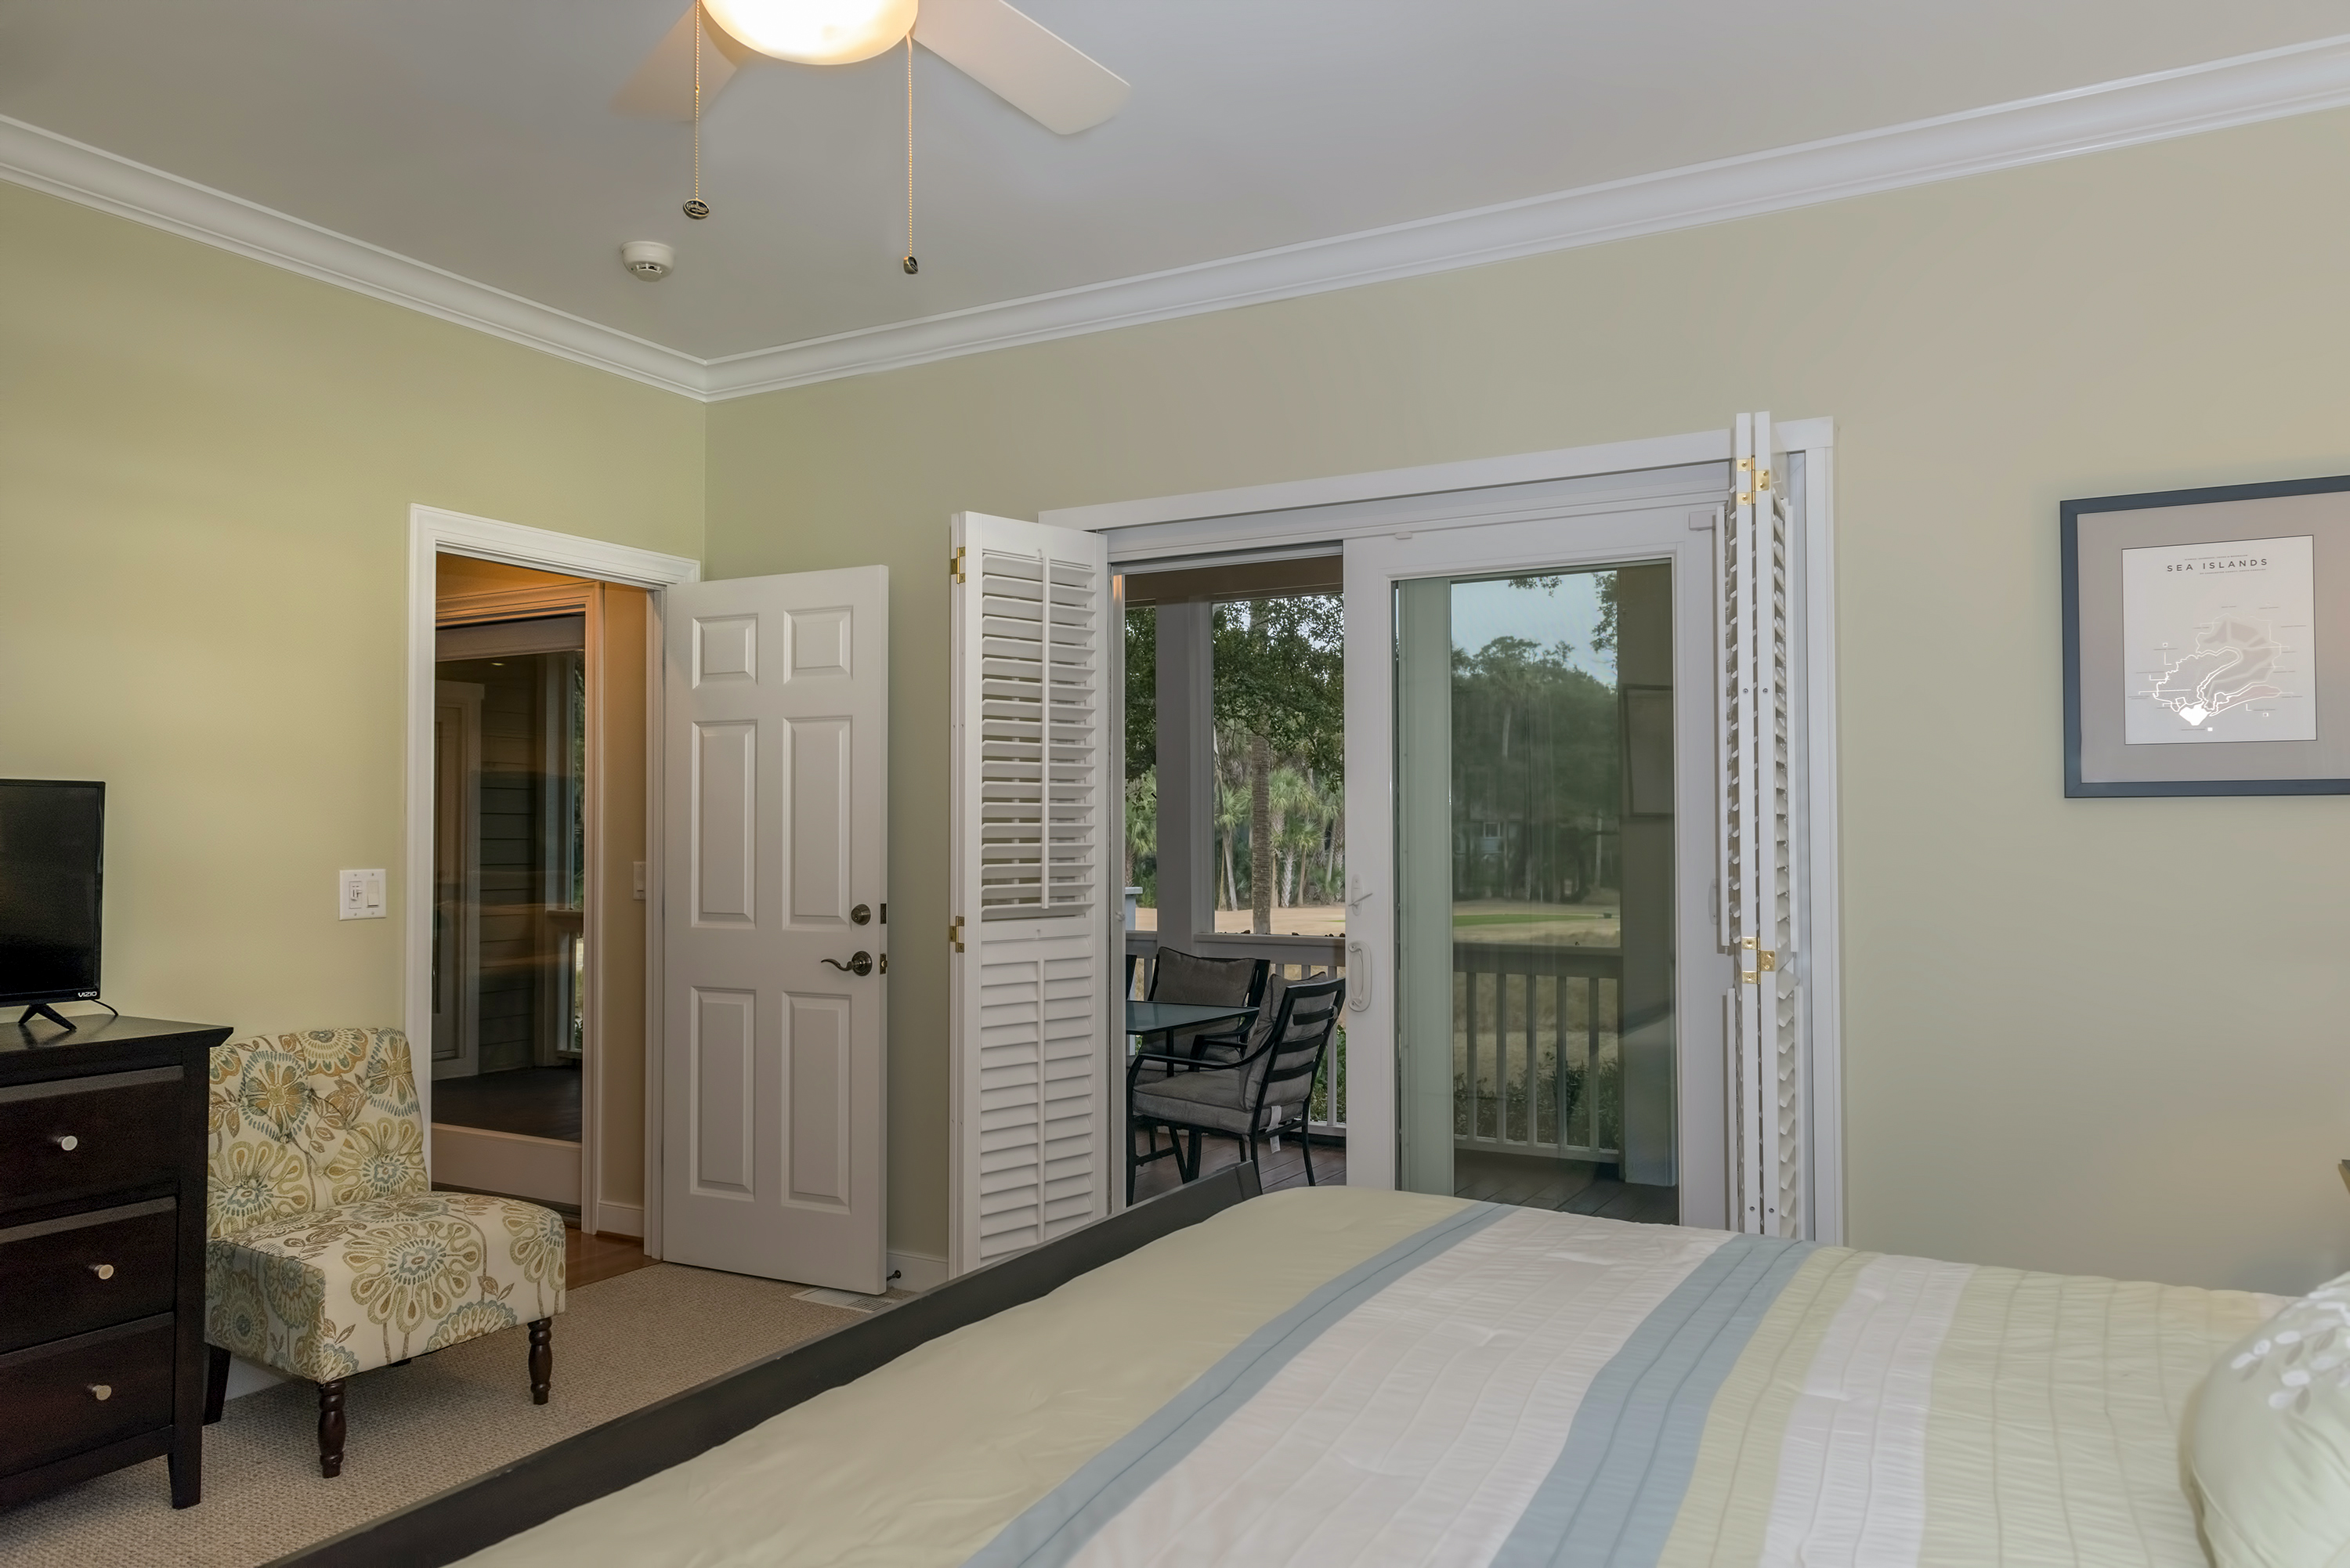 There is an HDTV and access to the screened porch.